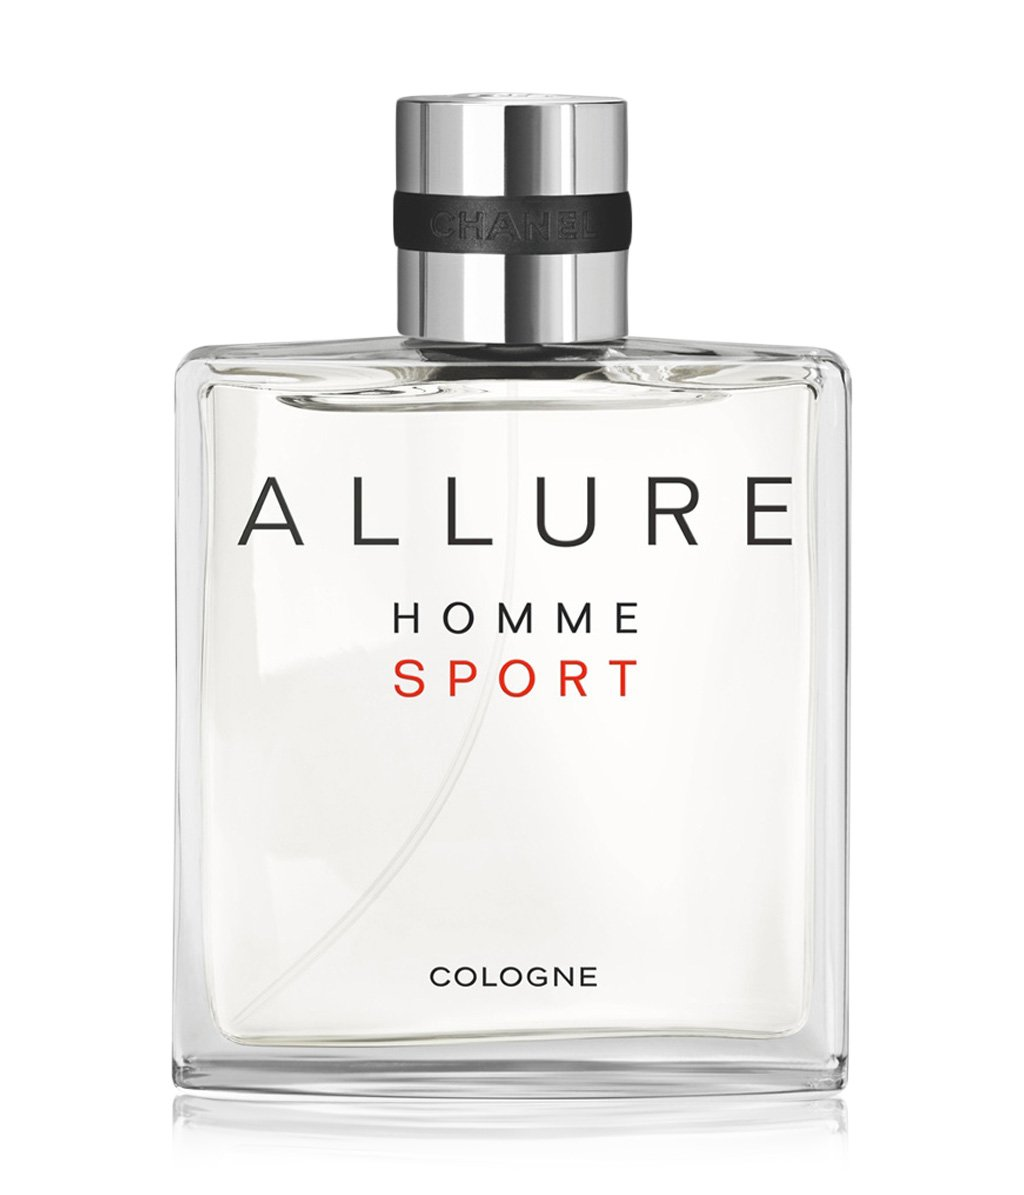 chanel allure homme sport cologne bestellen flaconi. Black Bedroom Furniture Sets. Home Design Ideas